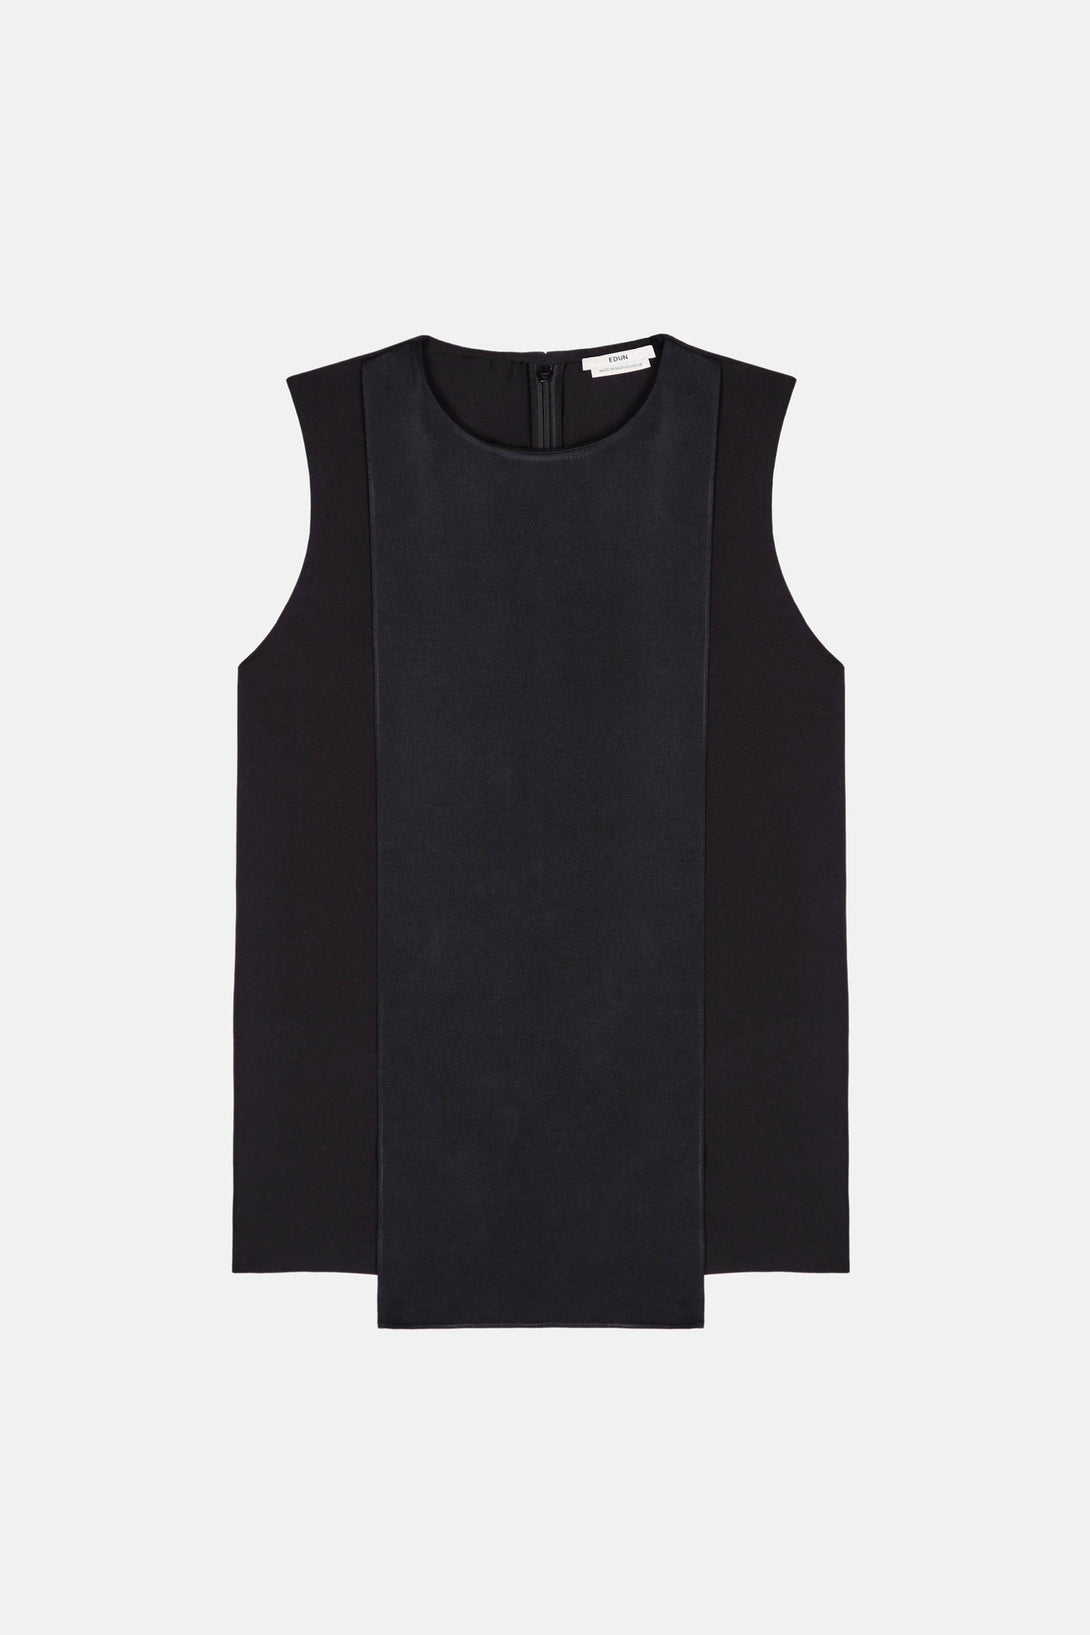 Sable Crepe Sleeveless Drape Top - Black